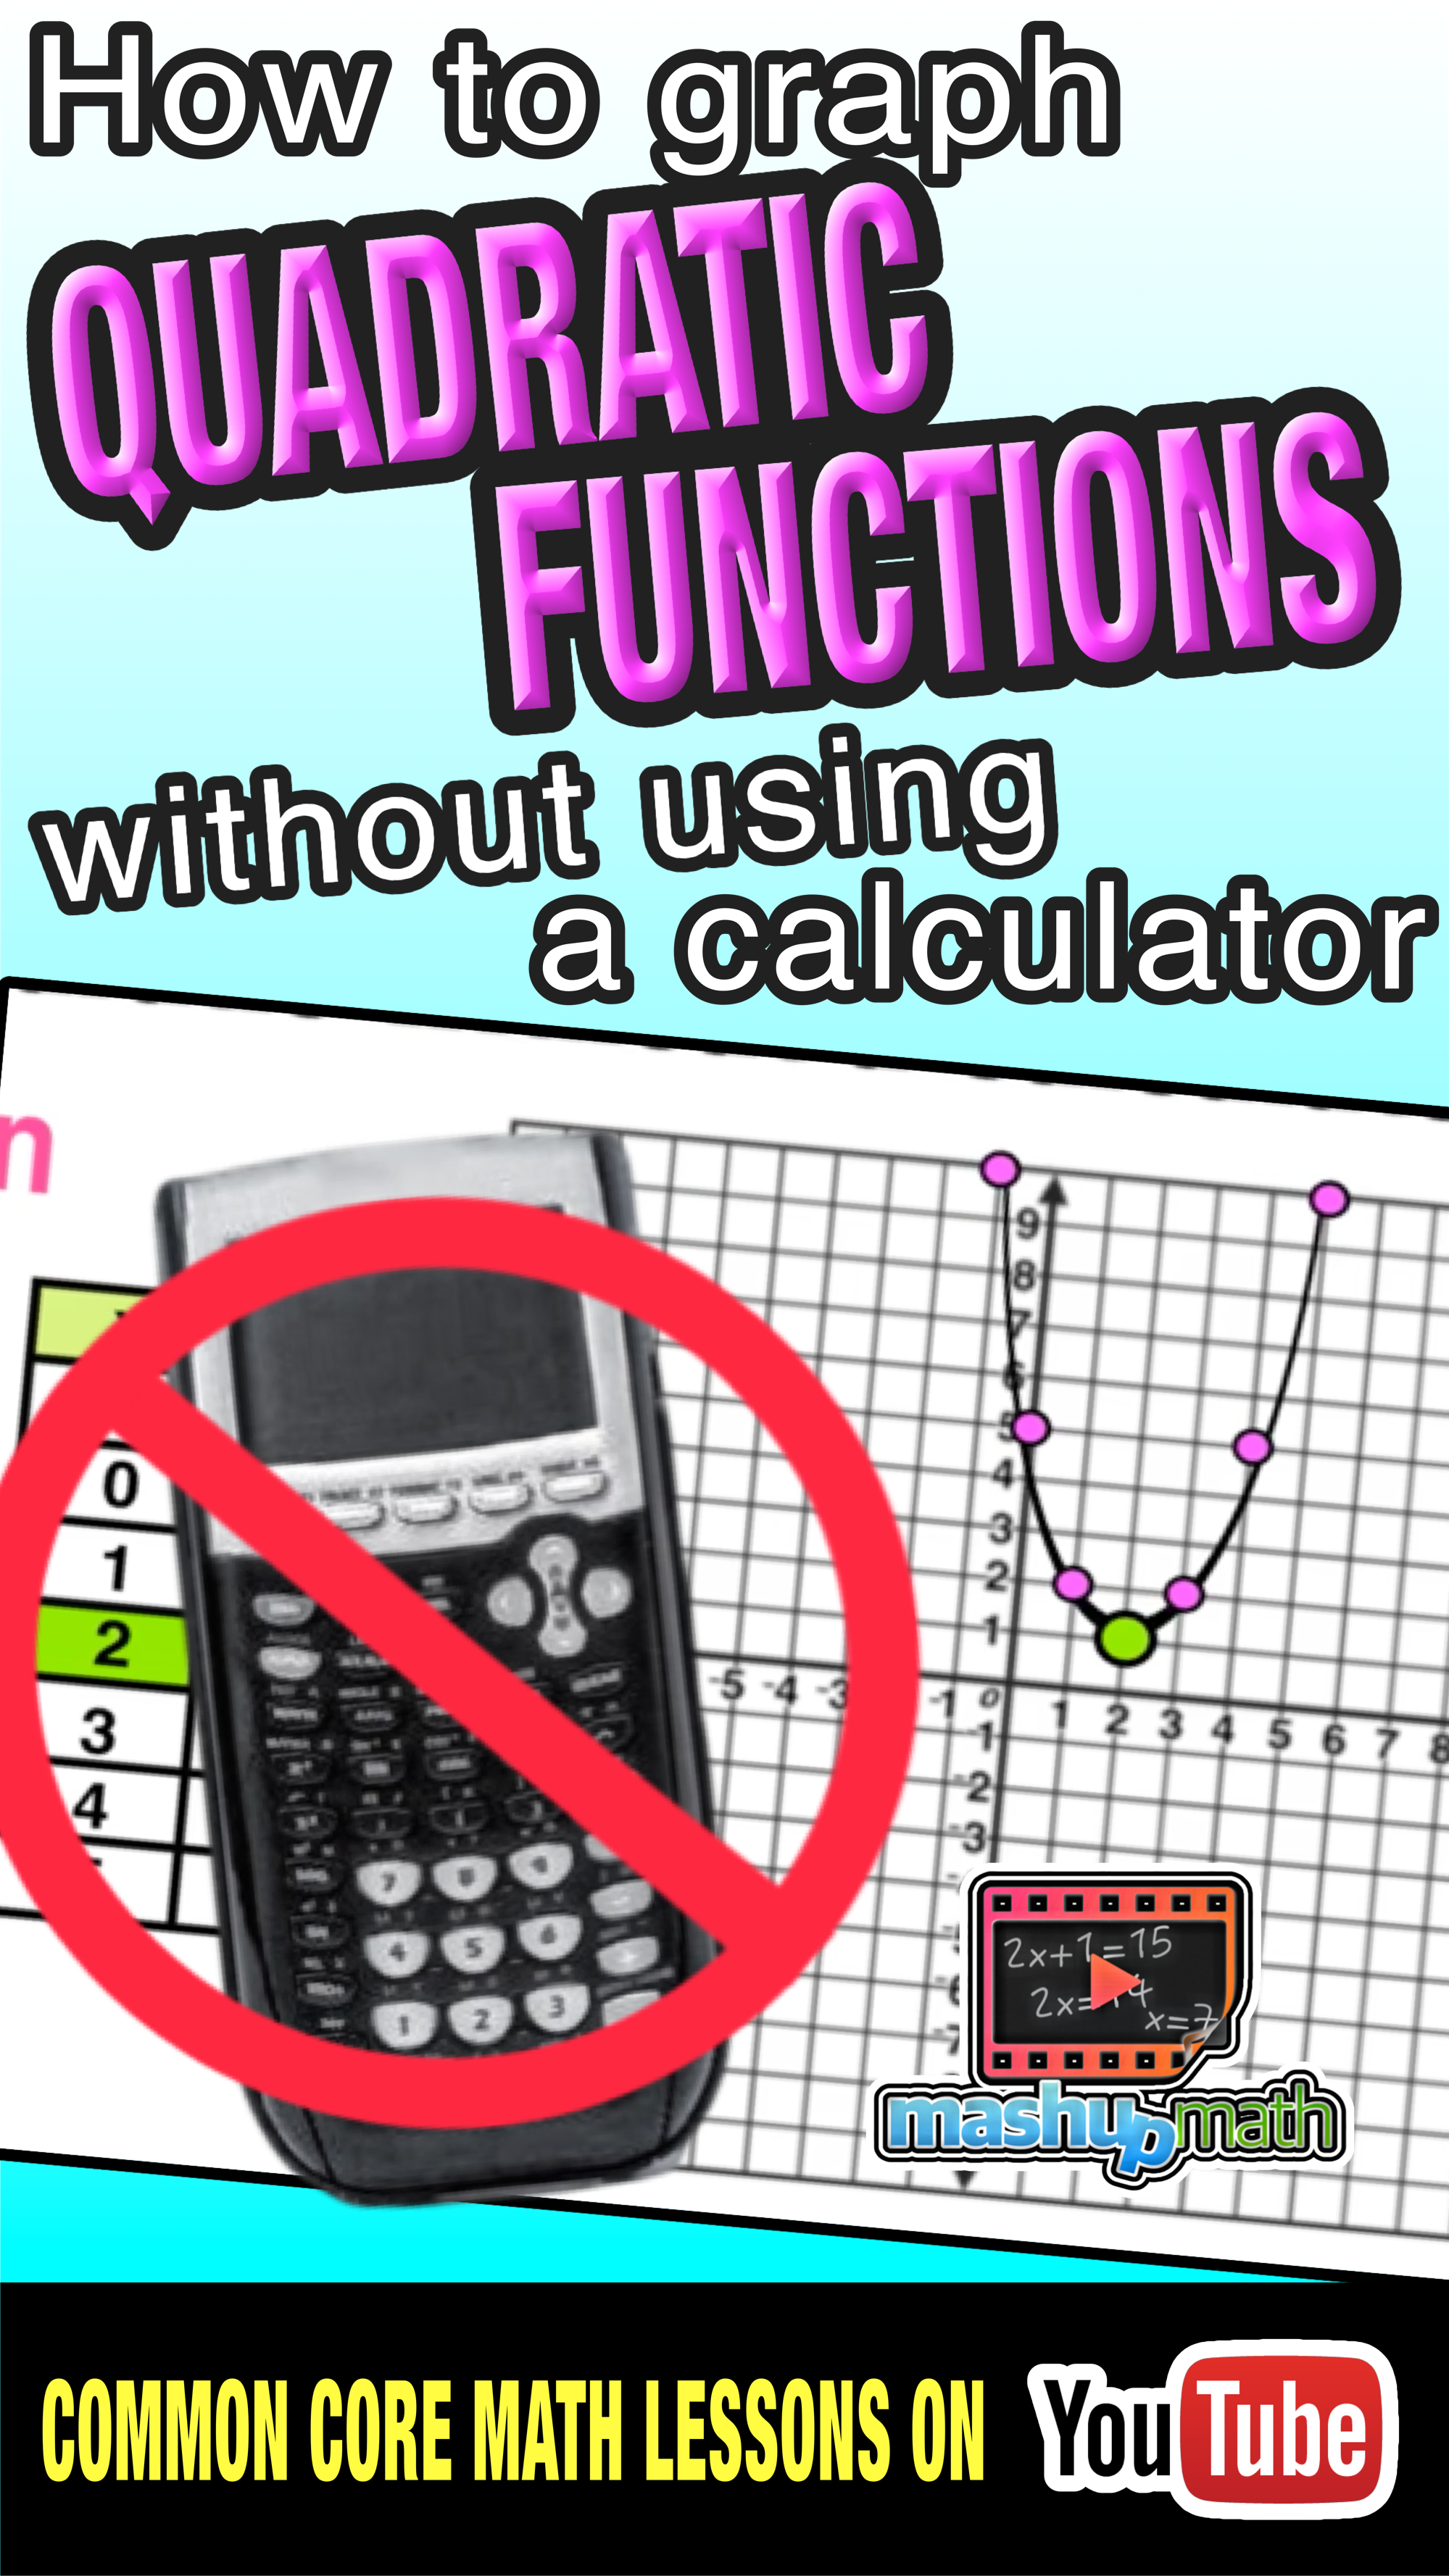 Do You Know How To Post A Quadratic Function Without Using